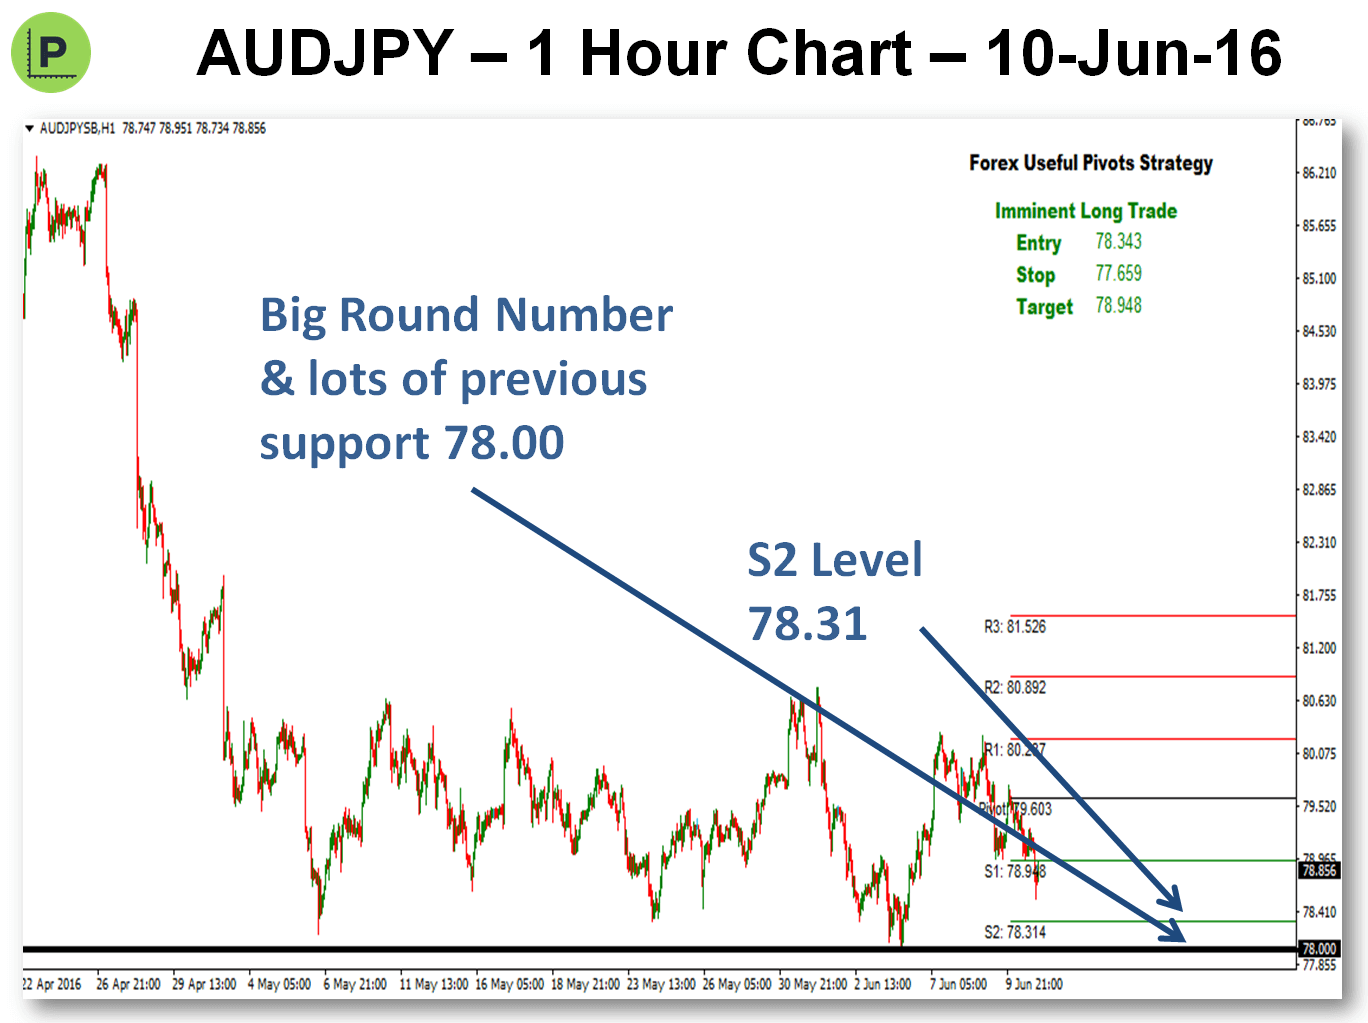 Looking For Pivots Trades - 11-Jun-16 AUDJPY